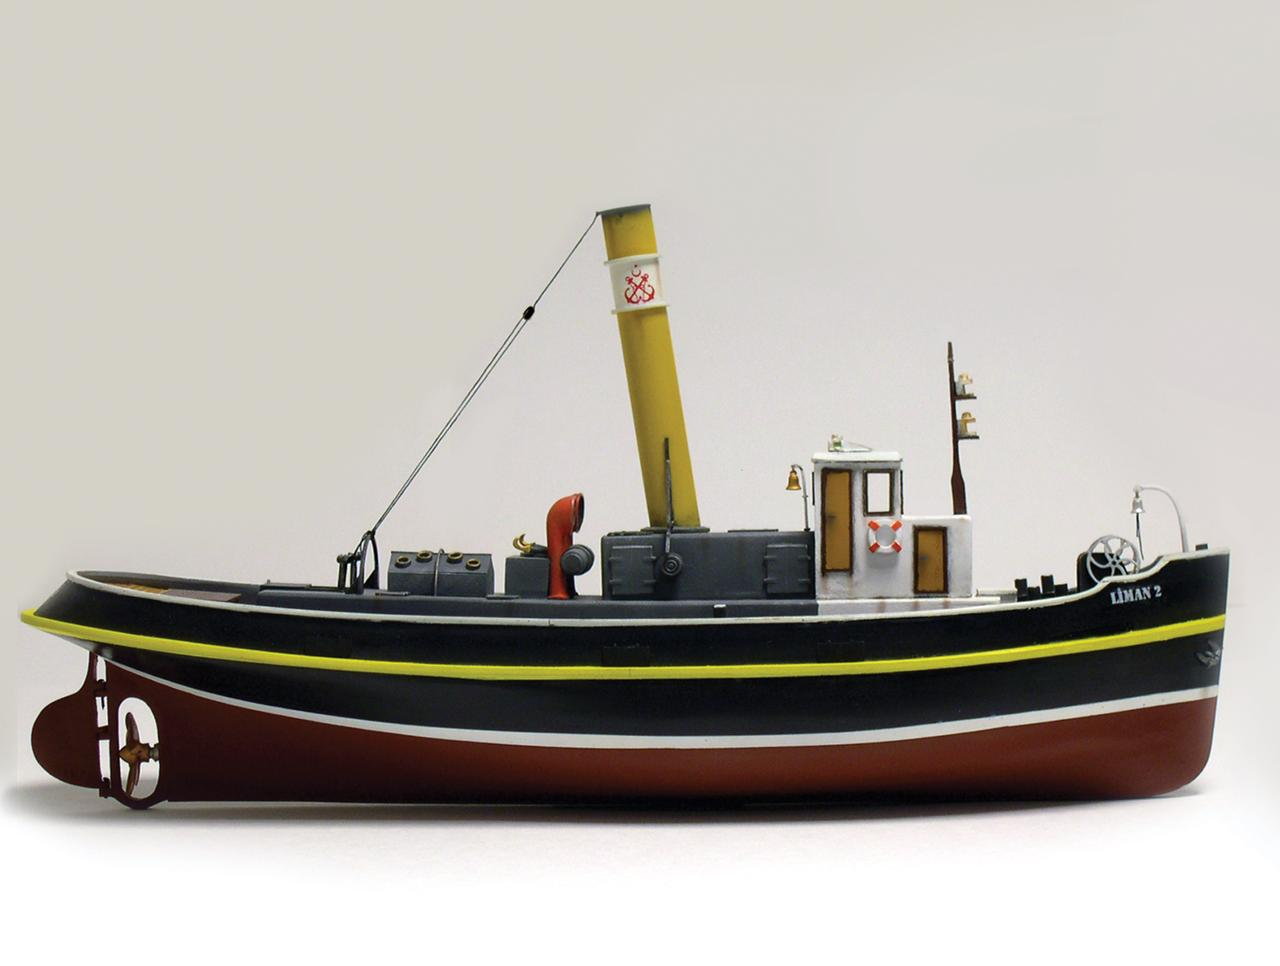 Liman 2 Wooden Model Ship Kit Buy Wooden Model Ship Kit Product On Alibaba Com